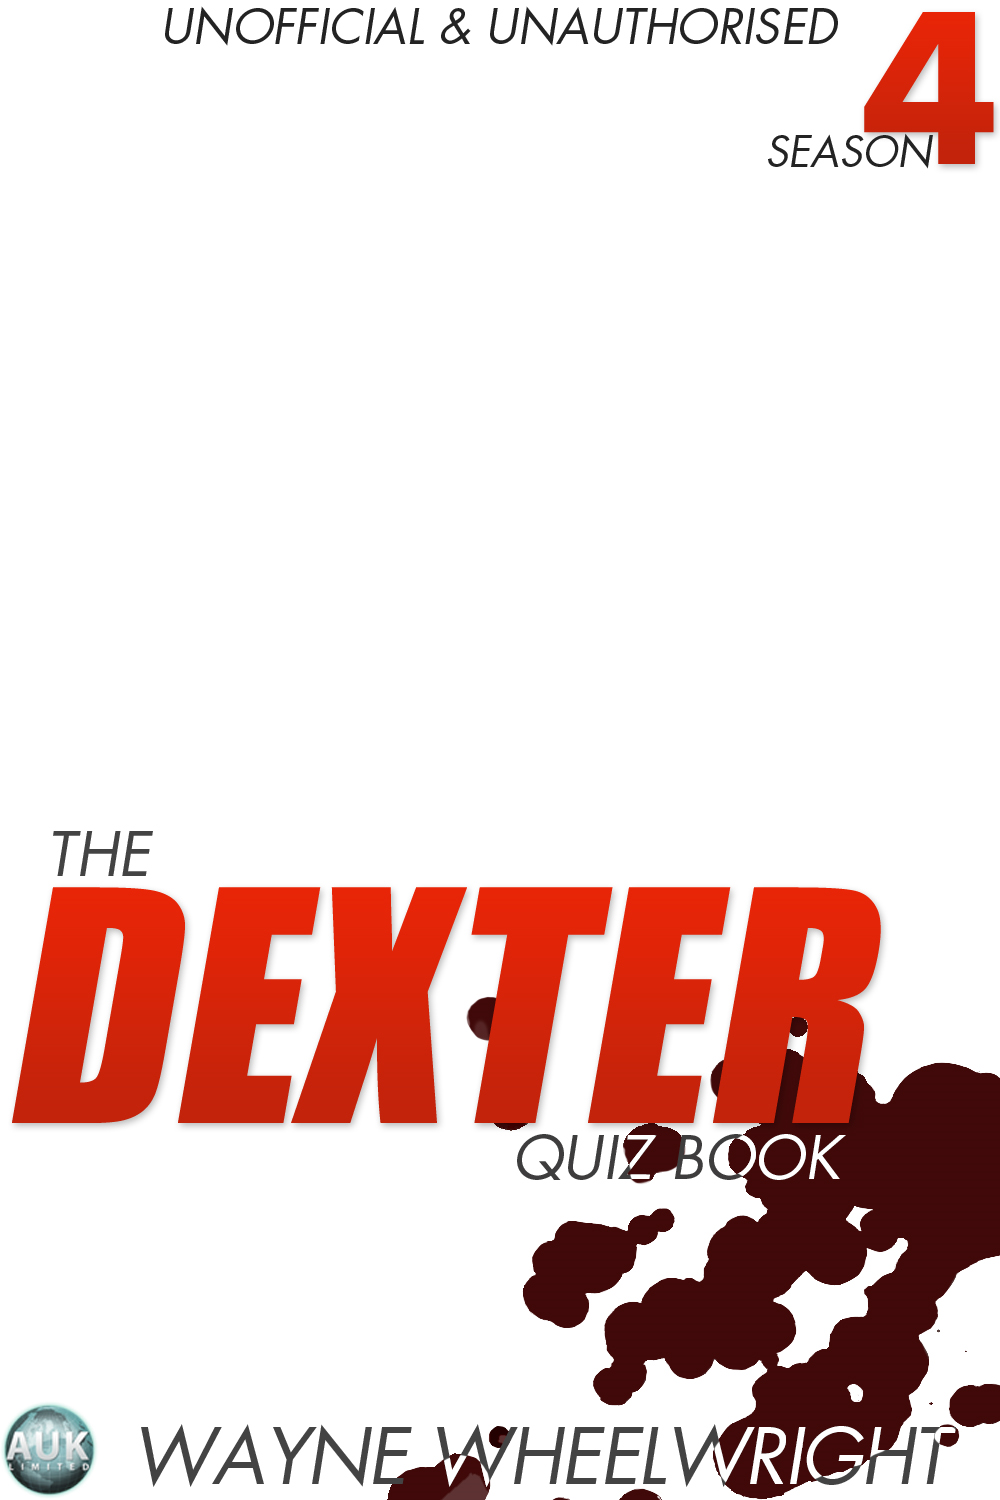 The Dexter Quiz Book Season 4